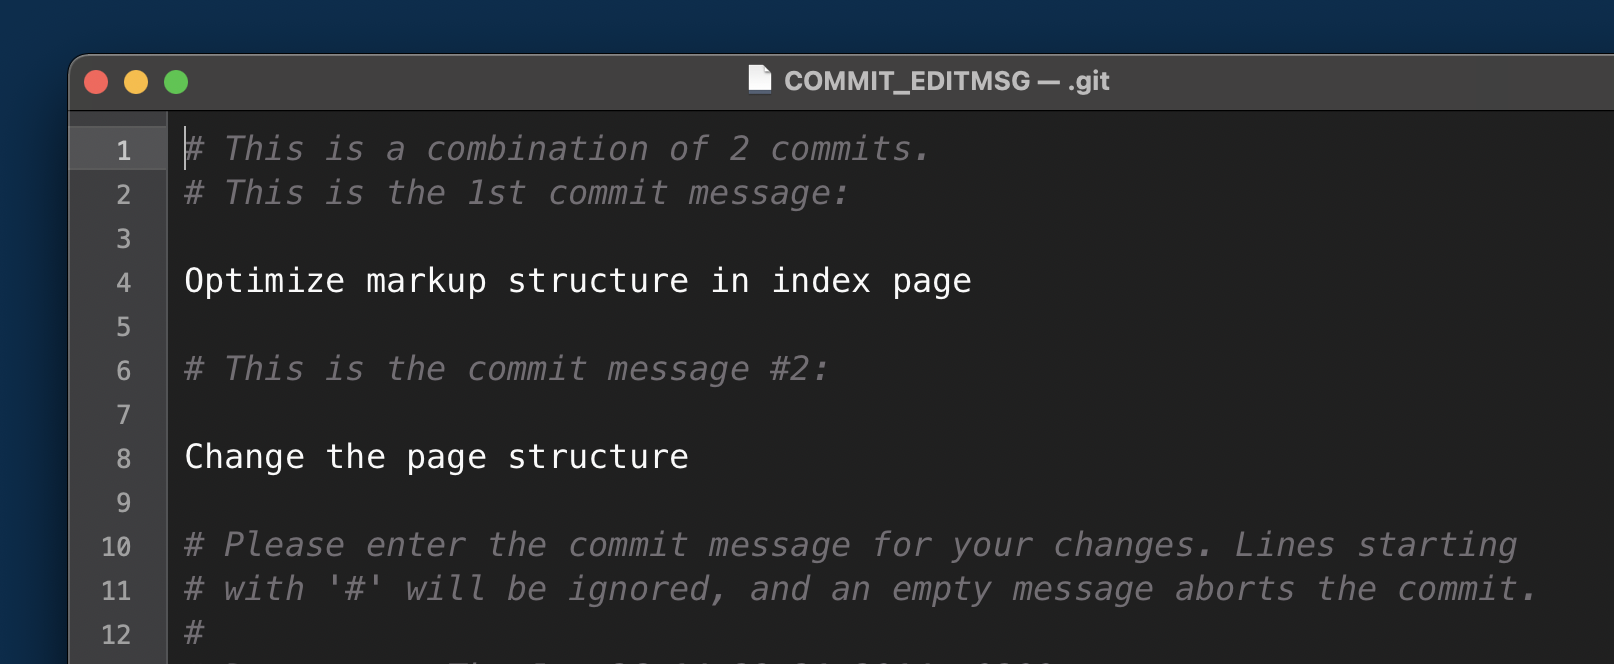 We can now provide a commit message for the new commit